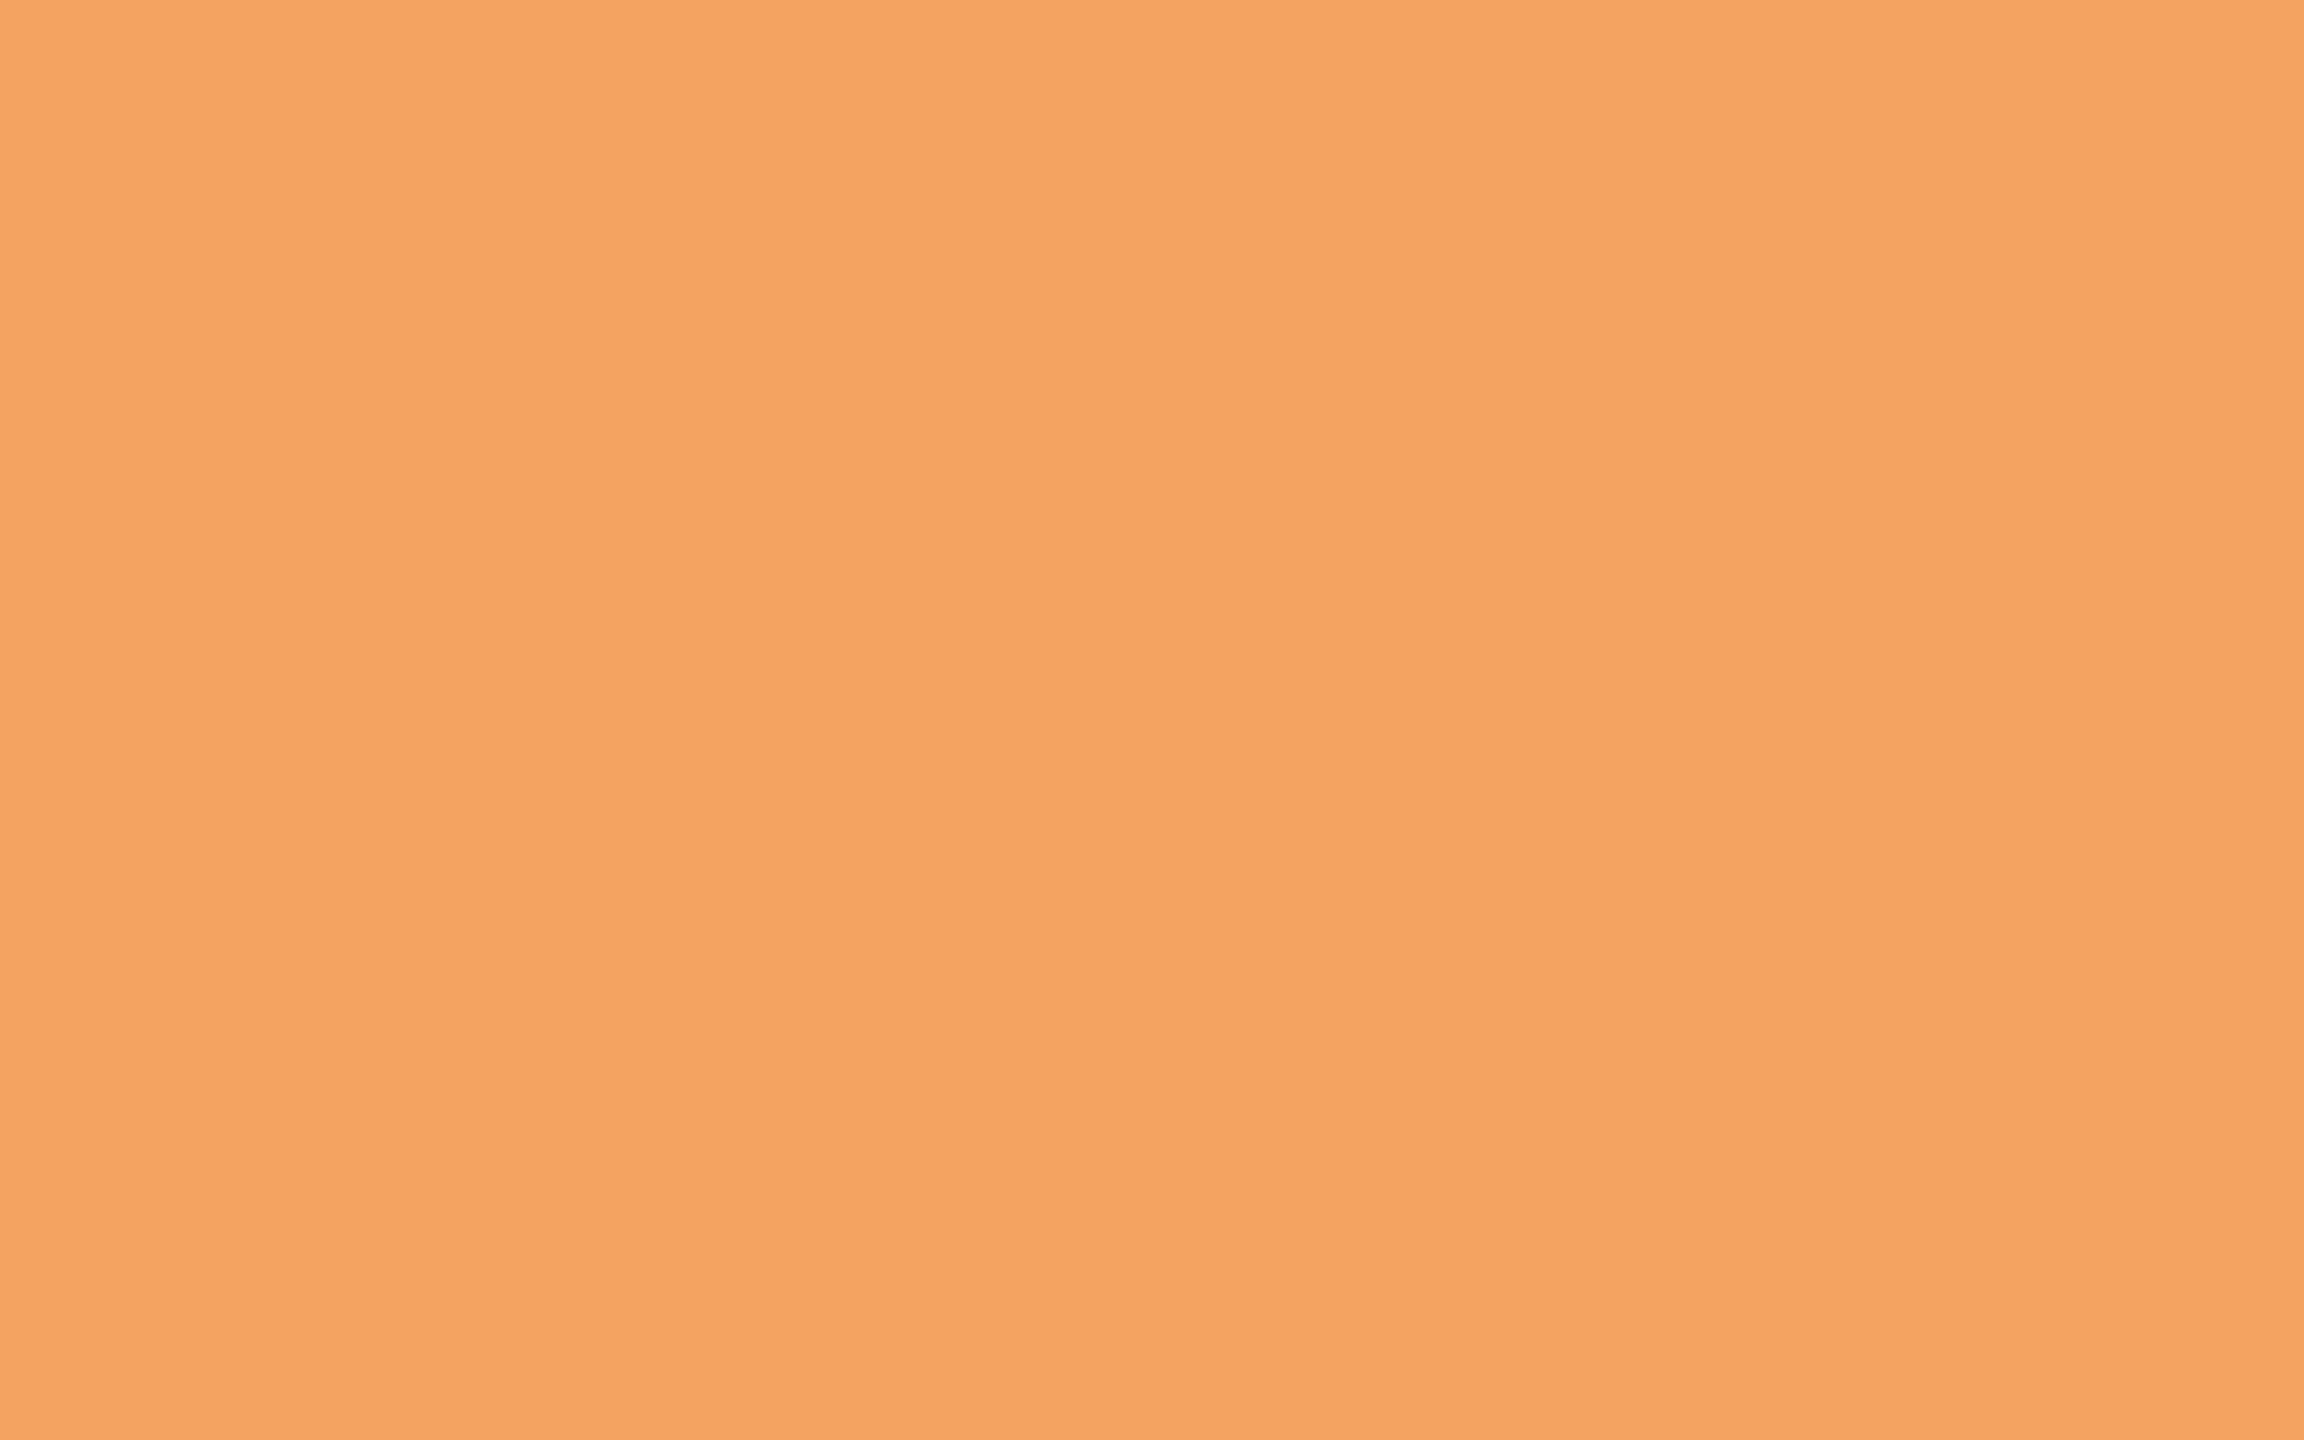 2304x1440 Sandy Brown Solid Color Background